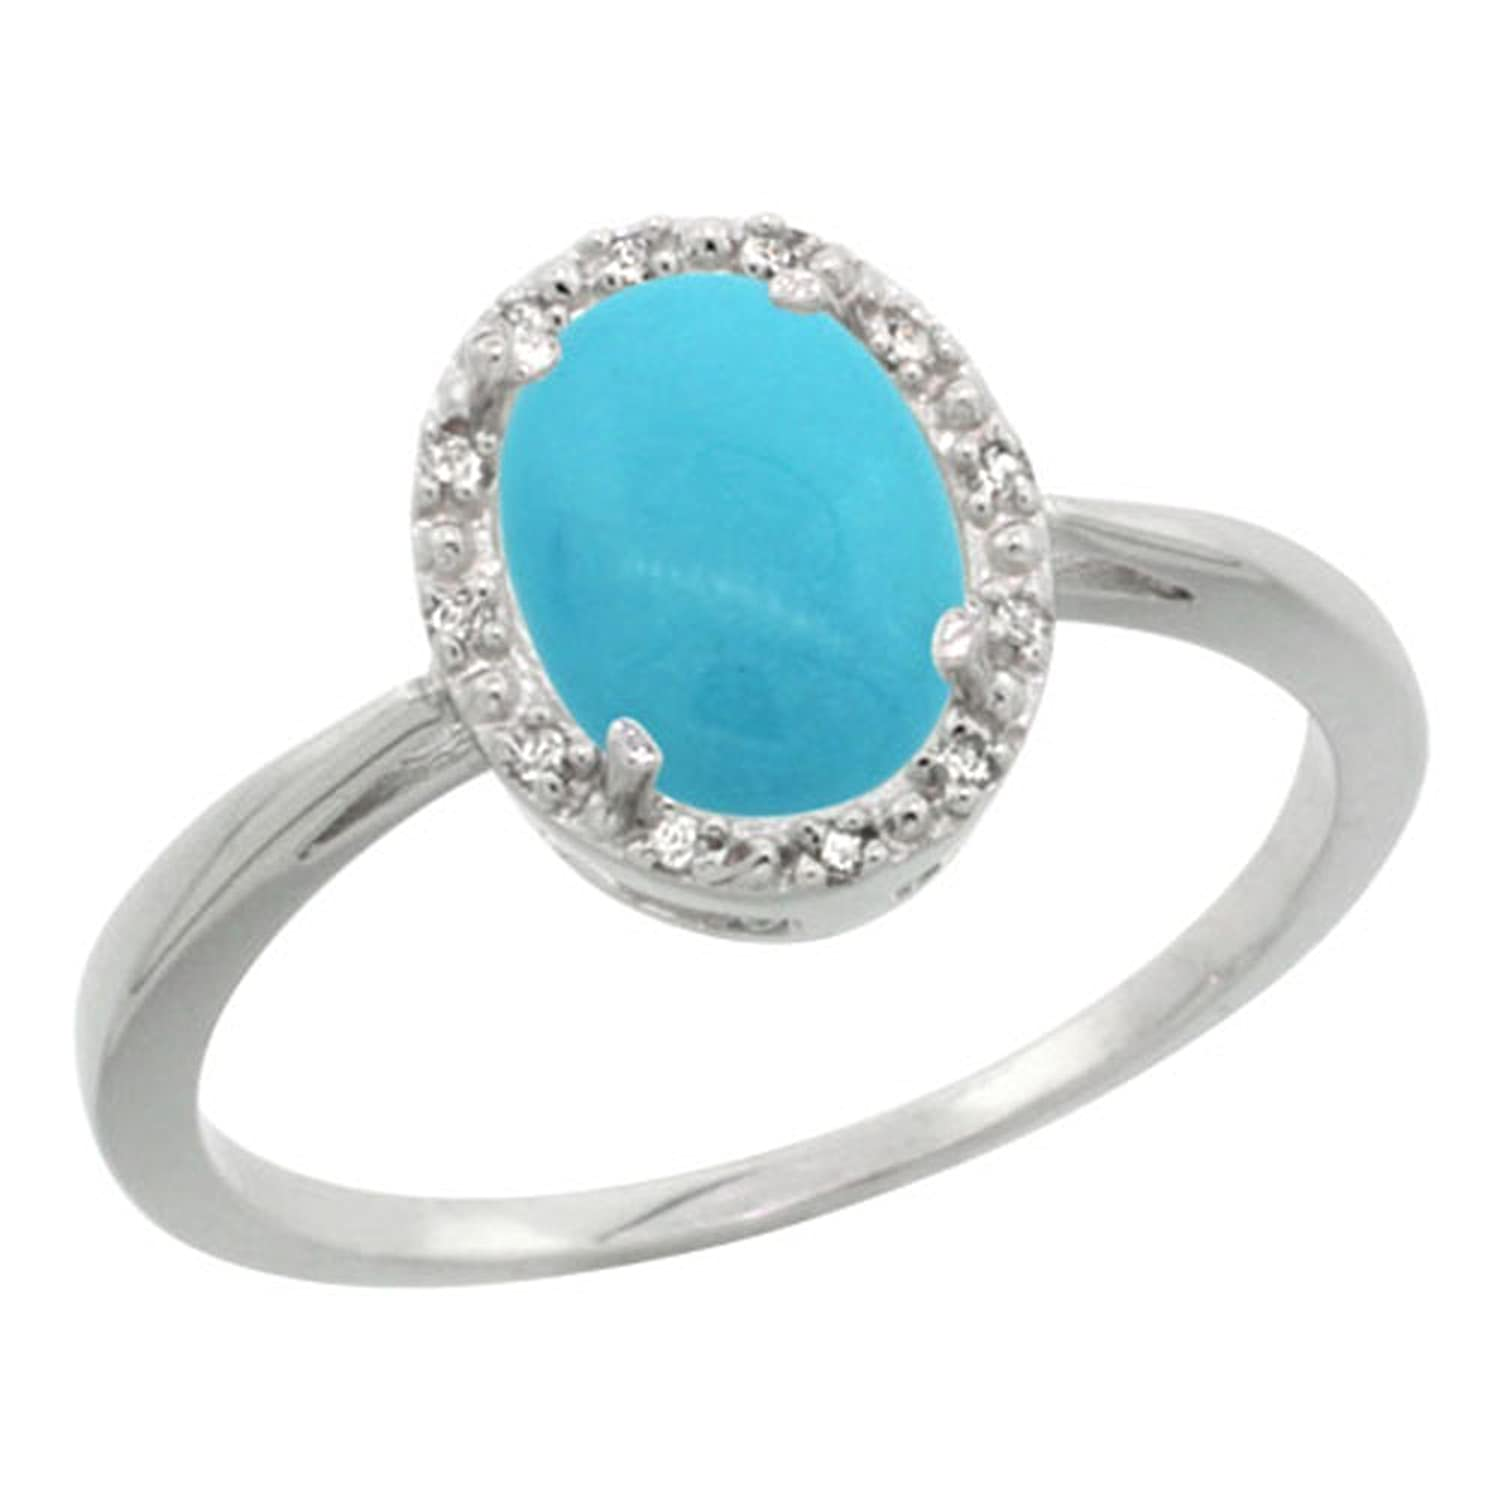 enlarged rings products cocktail ring and yurman david albion diamond jewelry turquoise